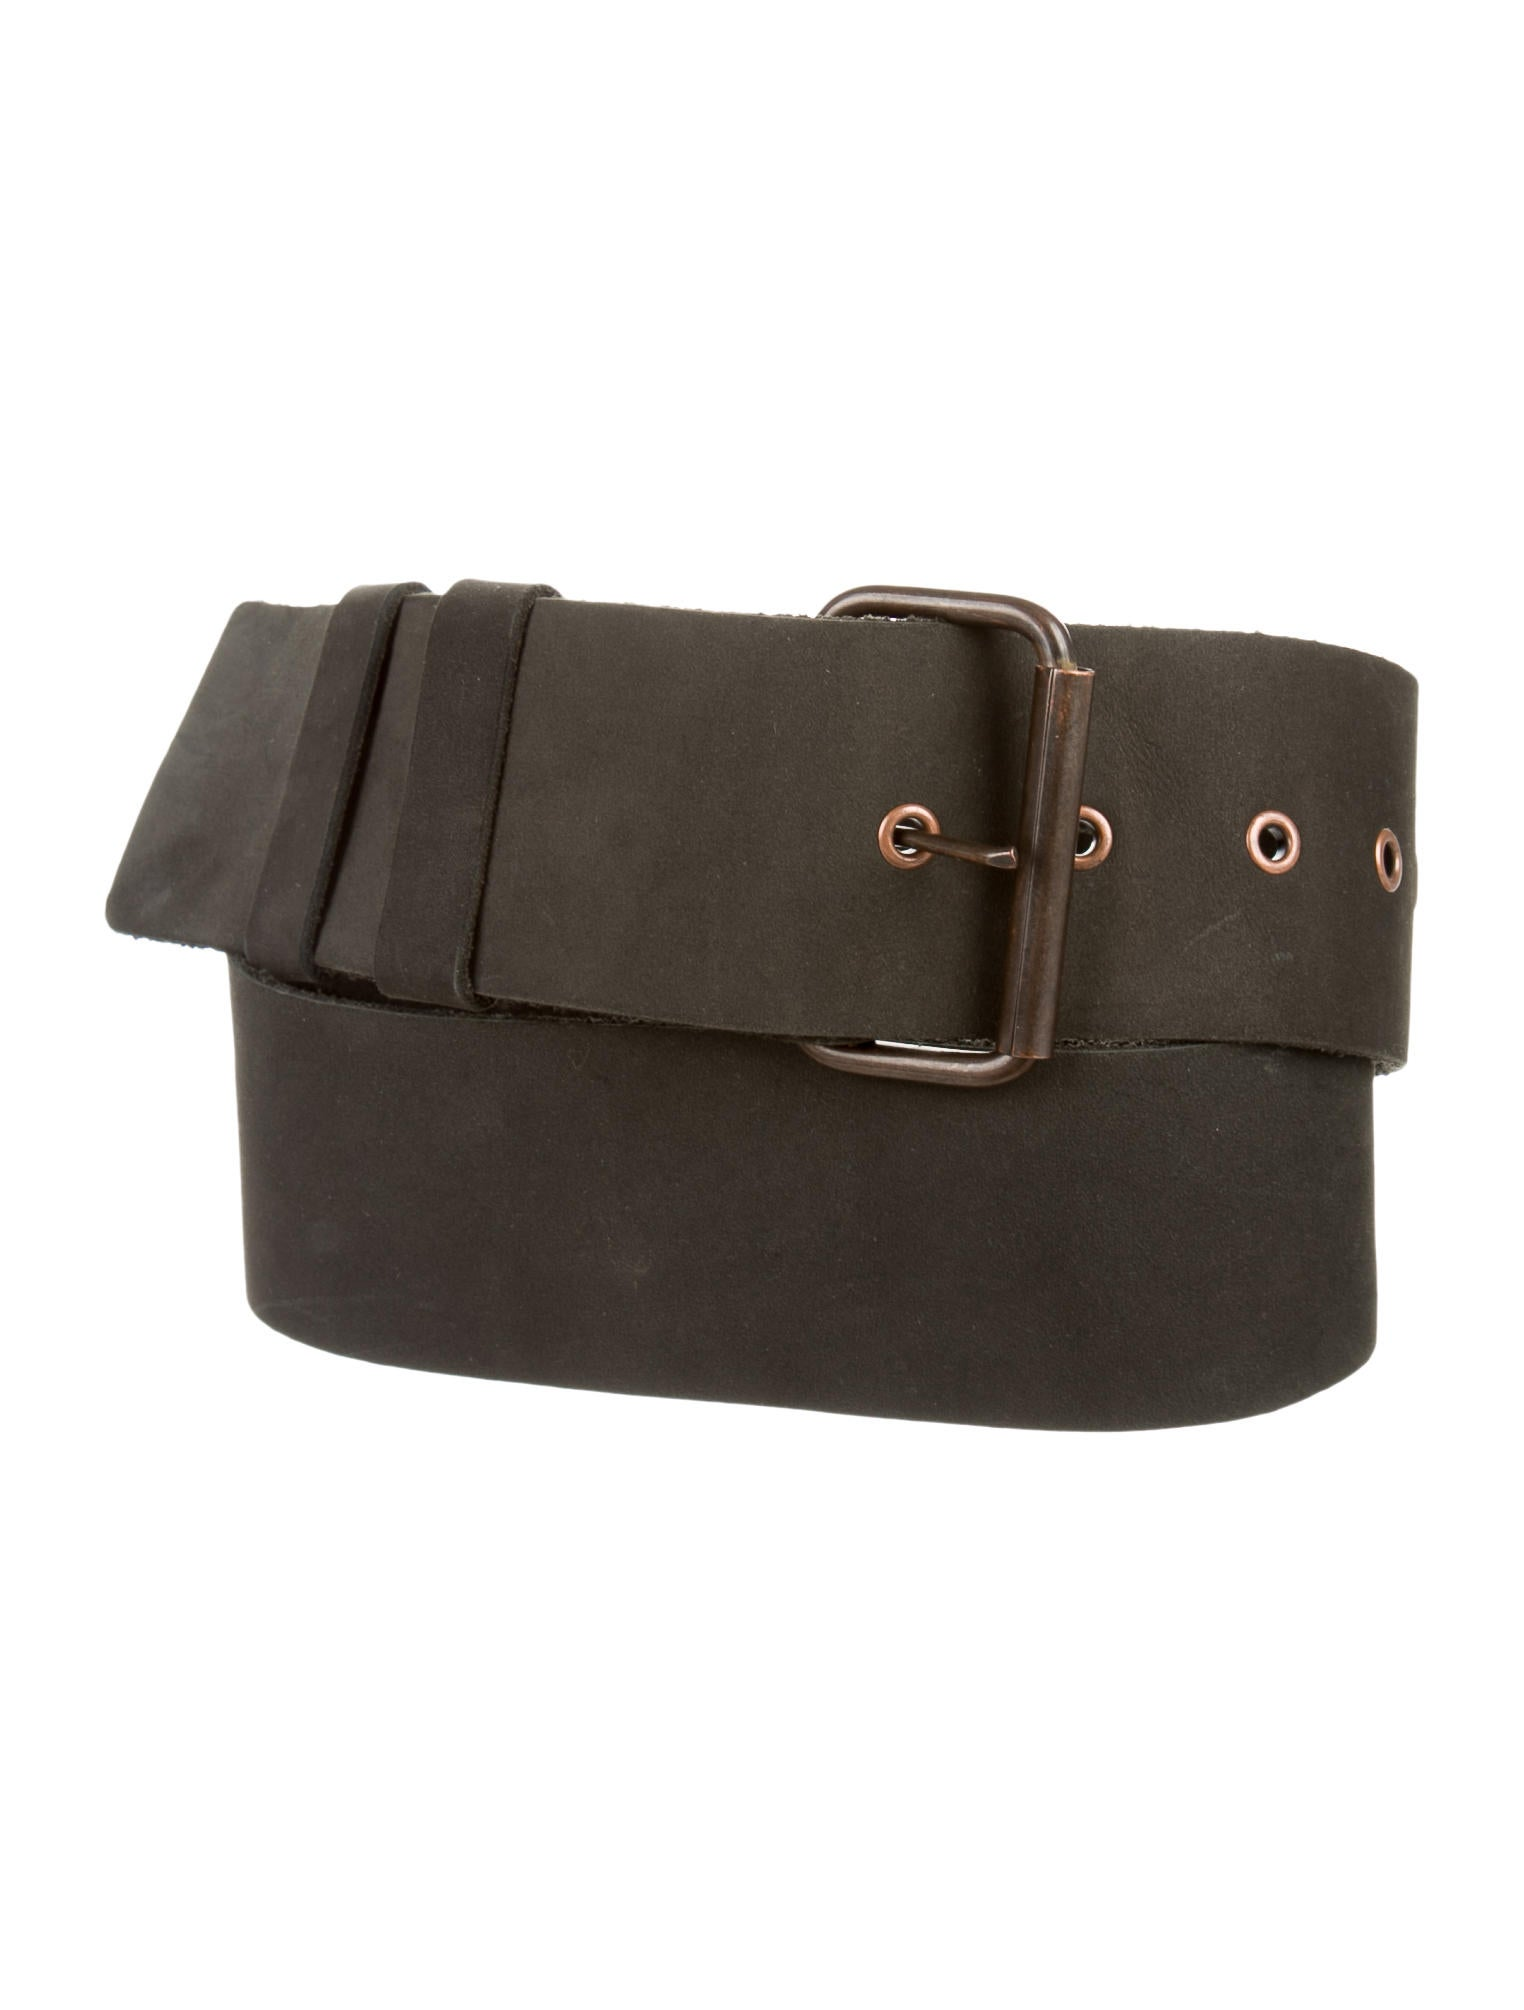 Women Gray Faux Suede Leather Fashion Wide Belt Hip Waist Studs Hook Buckle S M. Brand New · Size:One Size · Gray · Faux Leather. $ Buy It Now. Free Shipping. VTG 80's DONNA KARAN BIG GOLD BUCKLE GENUINE BLACK WIDE Suede BELT Sz M ITALY. Pre-Owned. $ Time left 15h 20m left. 0 bids. $ Buy It Now.